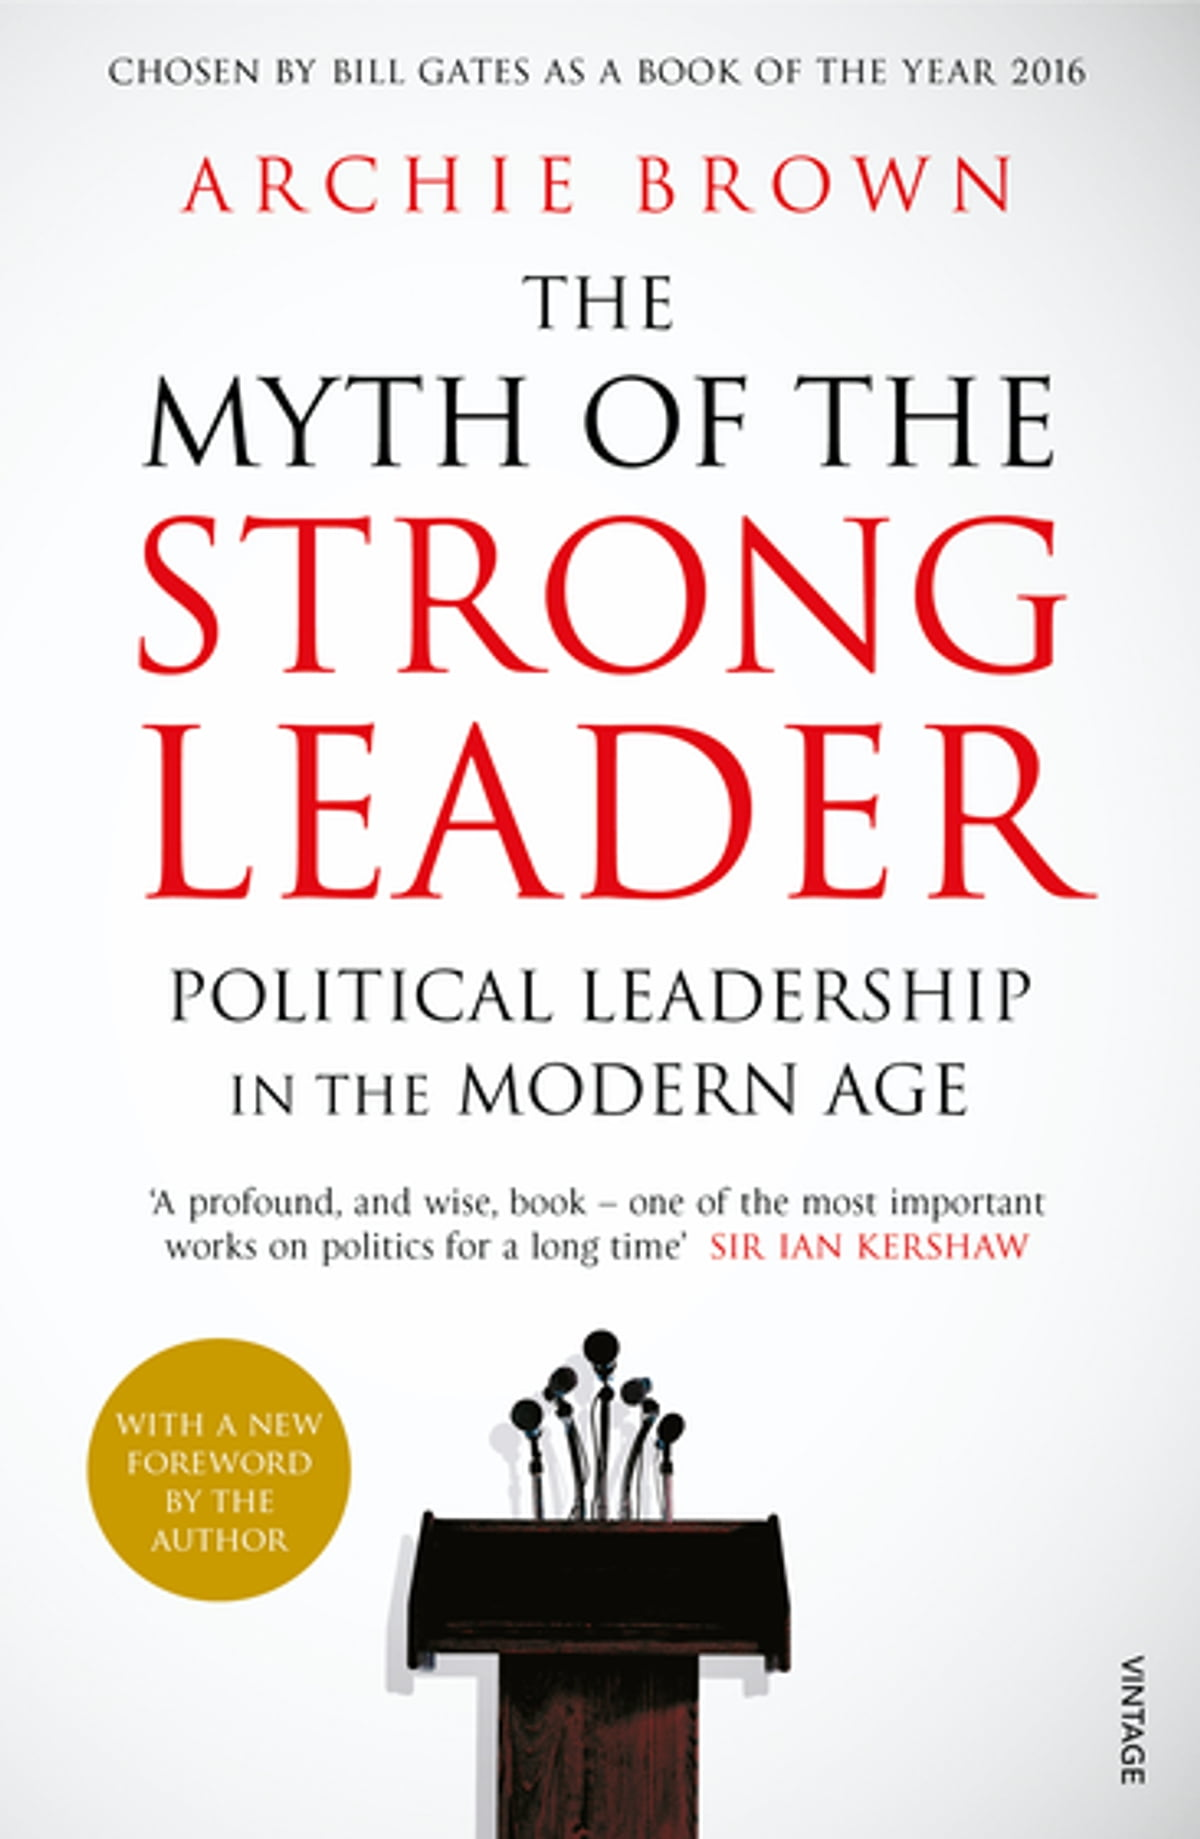 The myth of the strong leader ebook by archie brown 9781448156986 the myth of the strong leader ebook by archie brown 9781448156986 rakuten kobo fandeluxe Choice Image